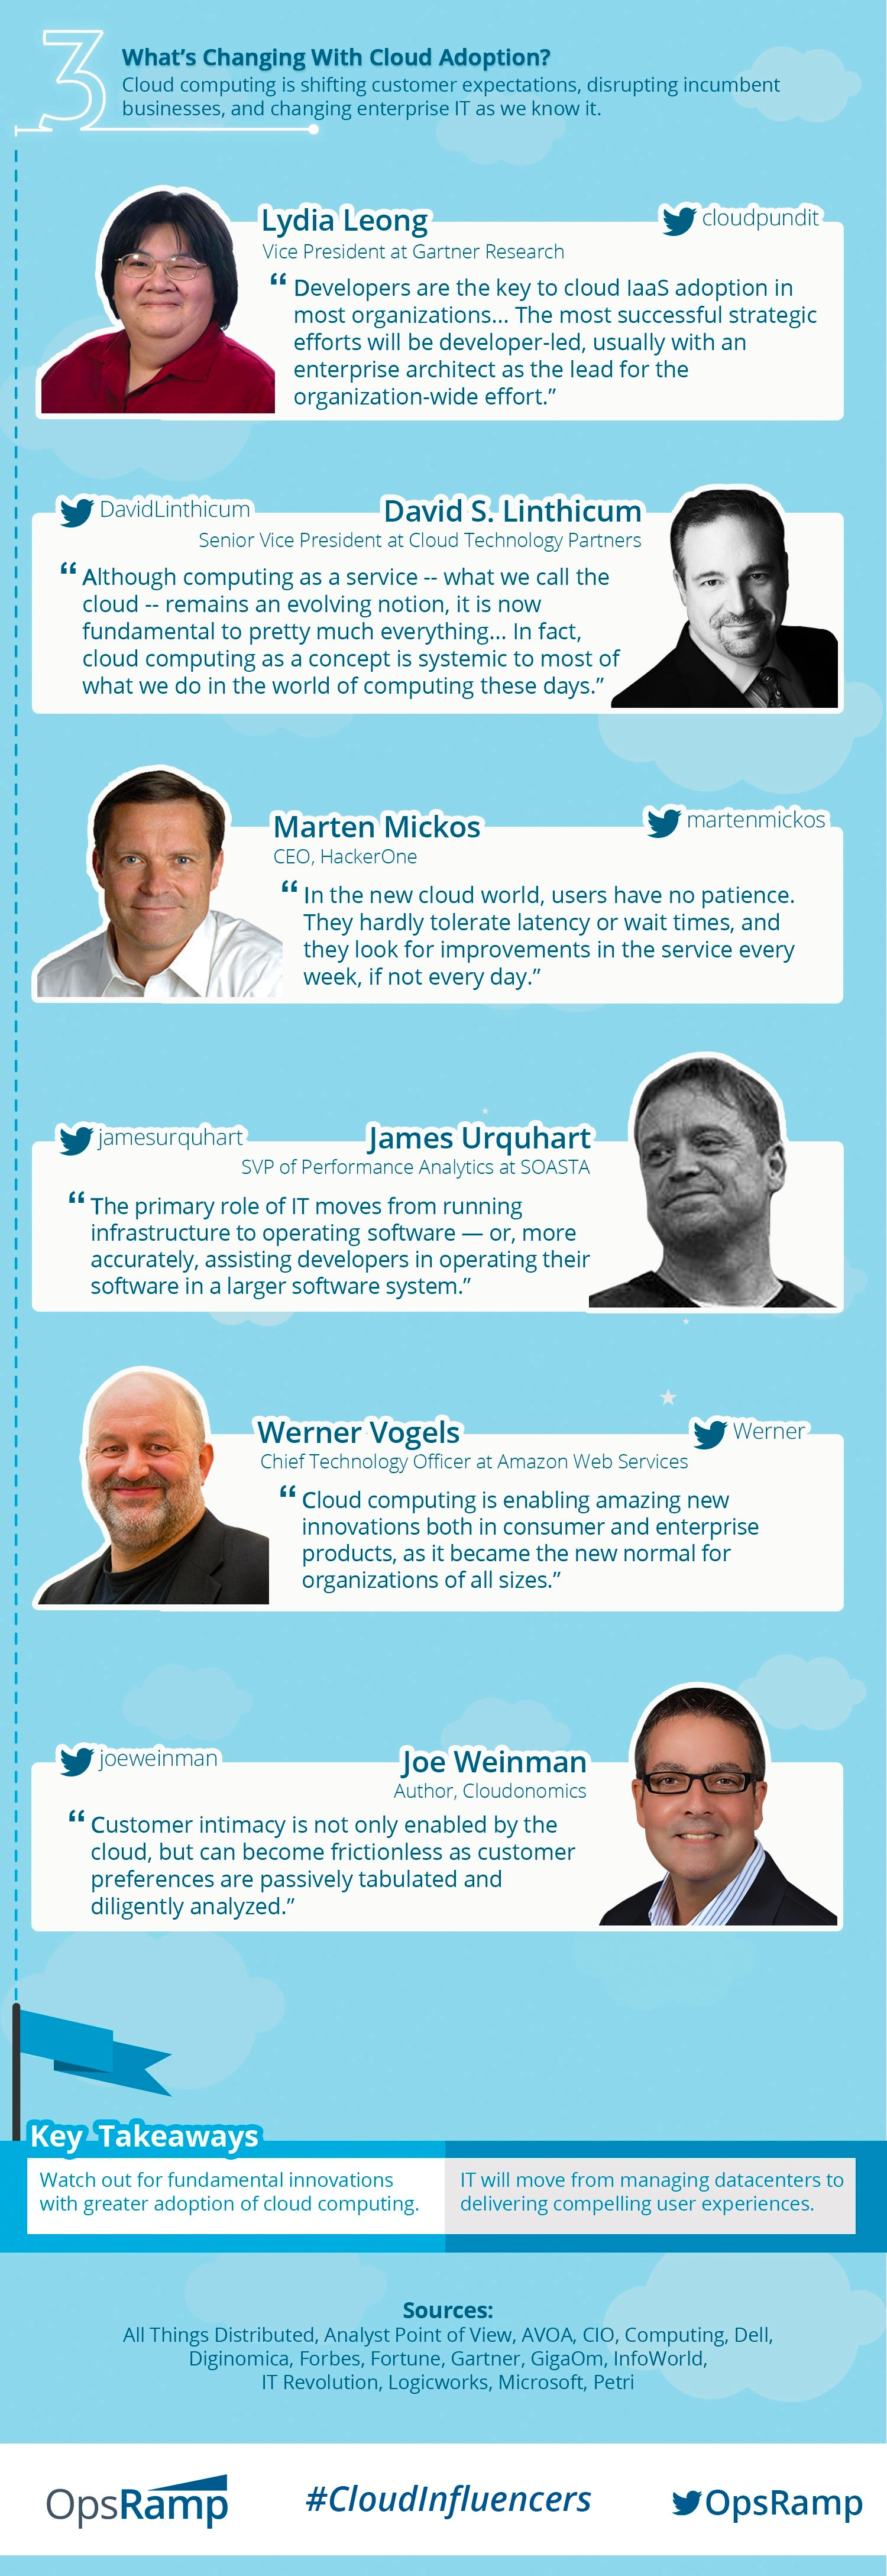 [Infographic] Cloud Influencers - Part 3